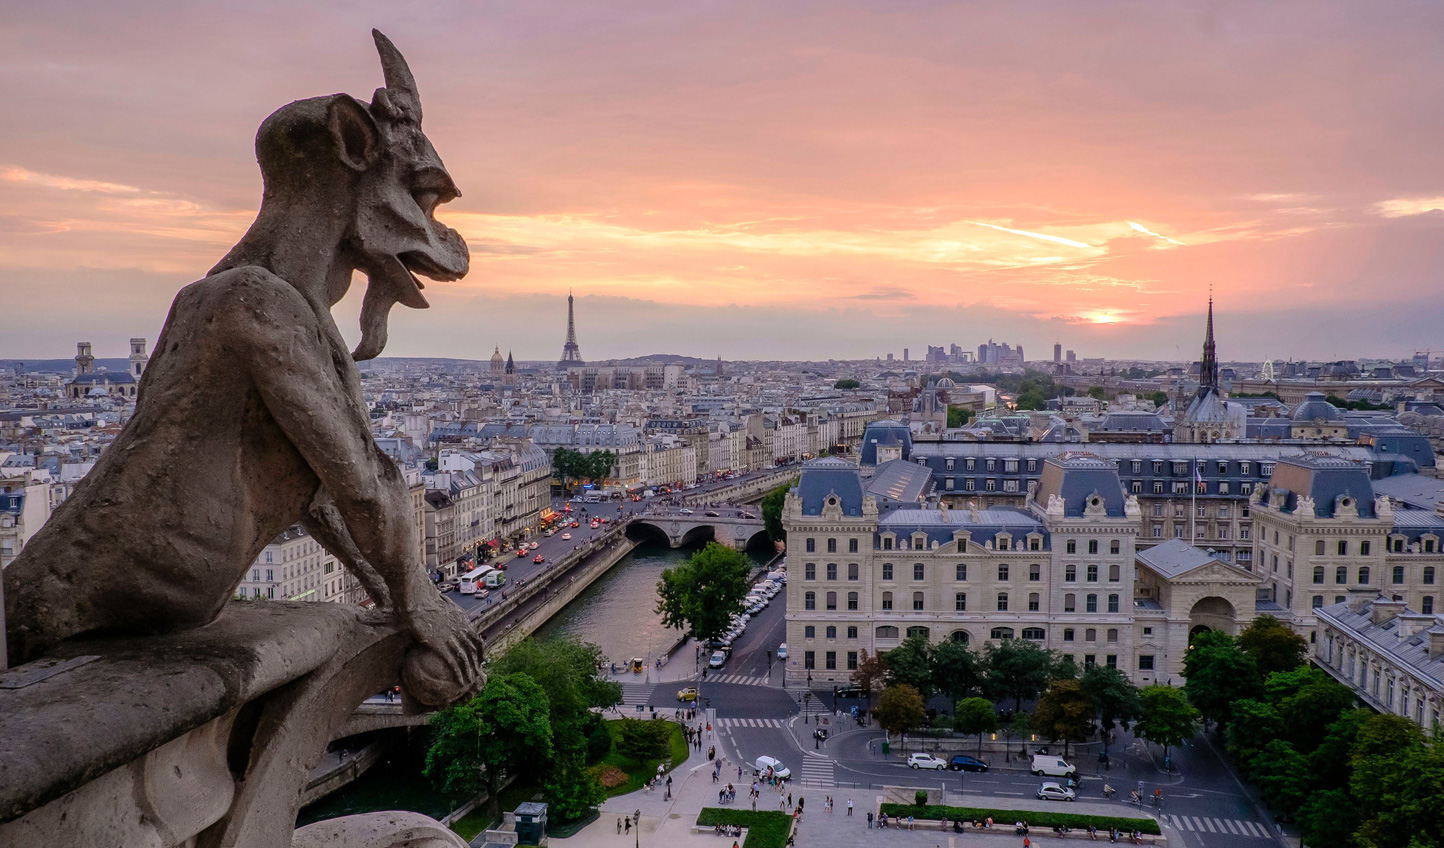 Head to Notre Dame for beautiful views over the city